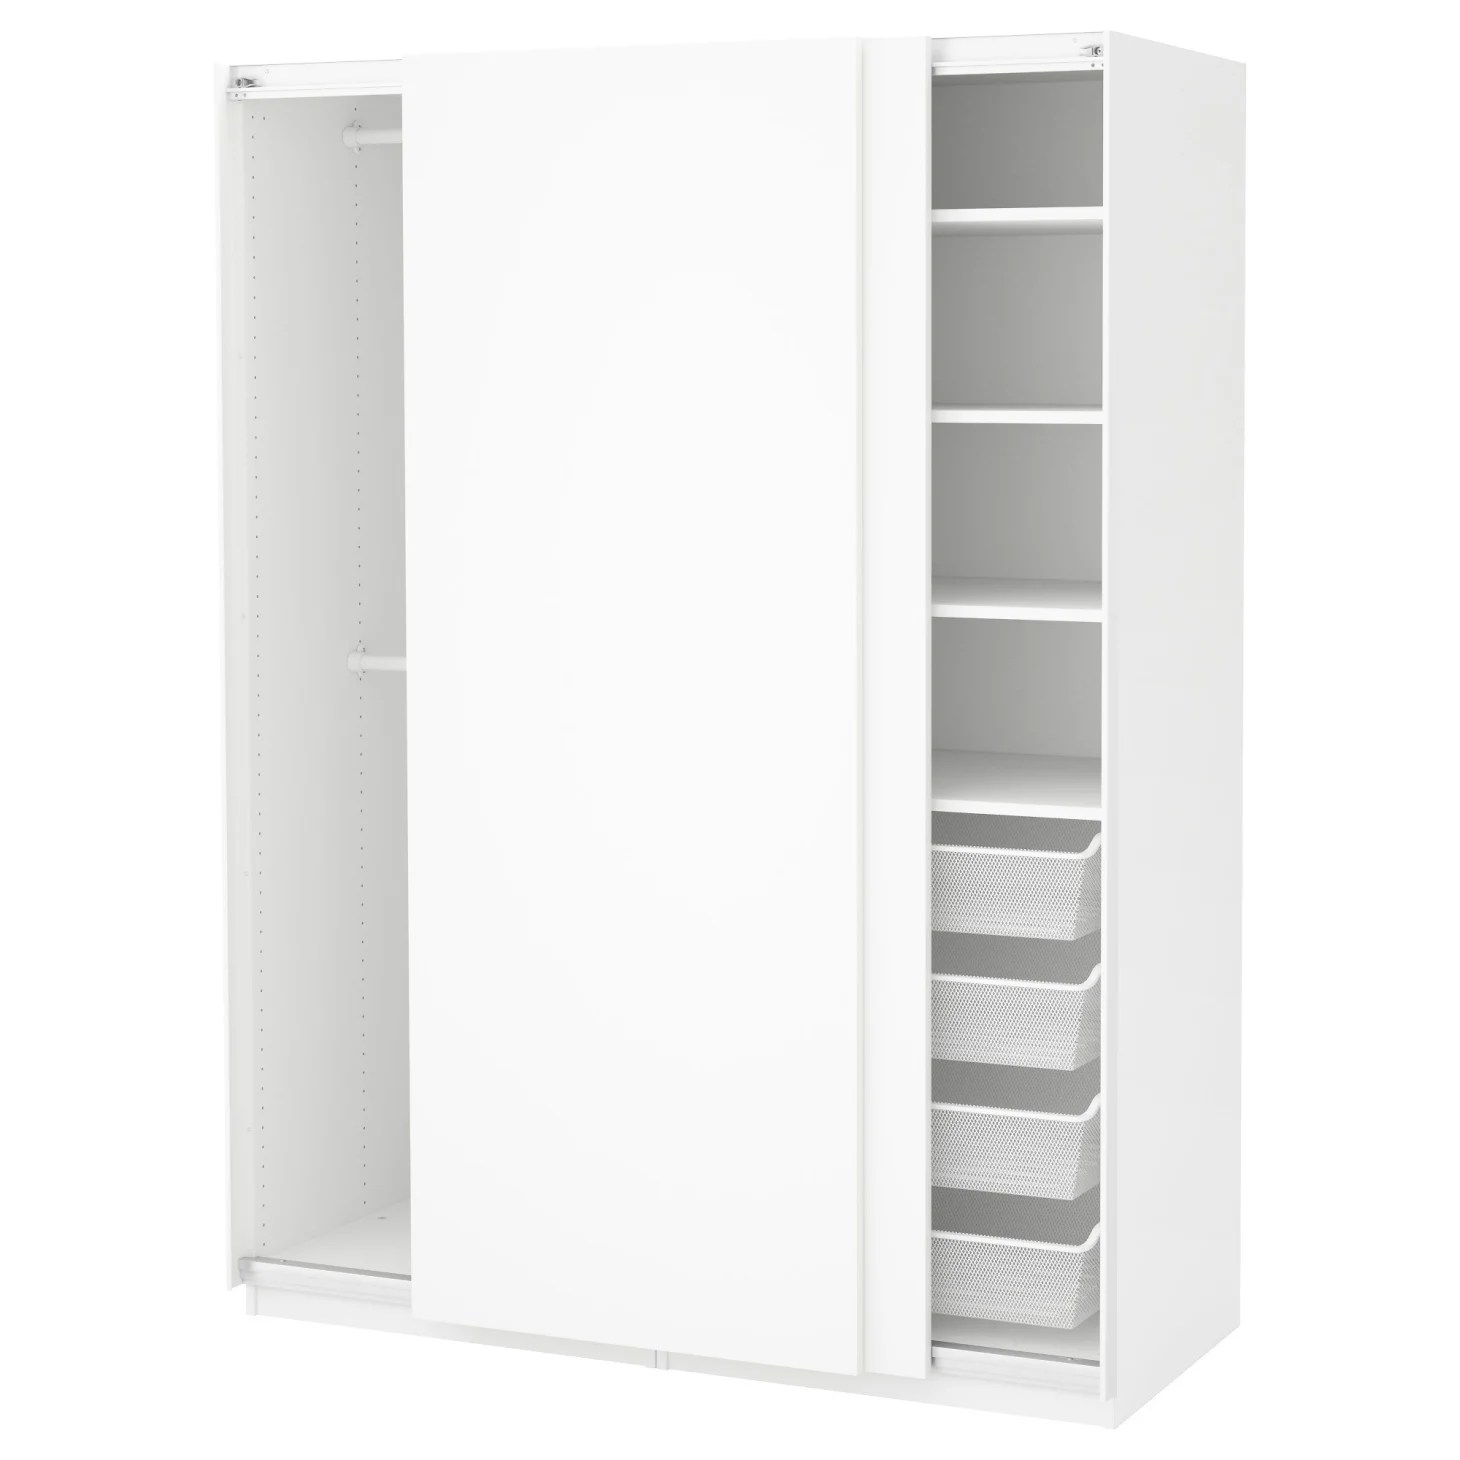 Ikea Wardrobe Leaning To One Side Best Ikea Products For Renters Apartment Therapy